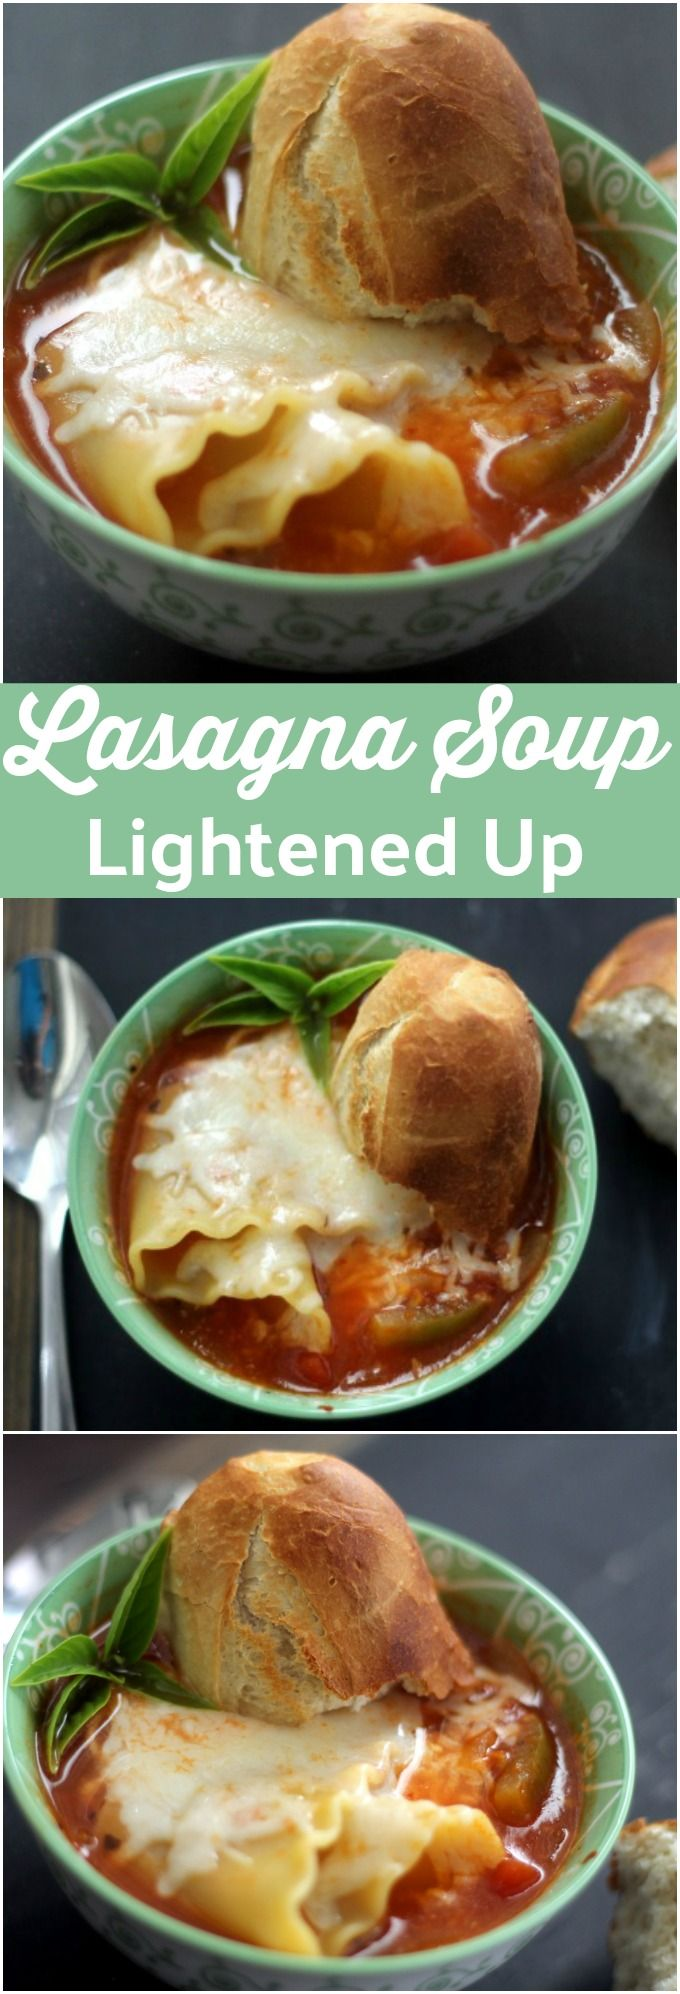 Skinny Lasagna Soup features all your classic comforts of traditional lasagna, but it's lightened up and made into a heartwarming soup!